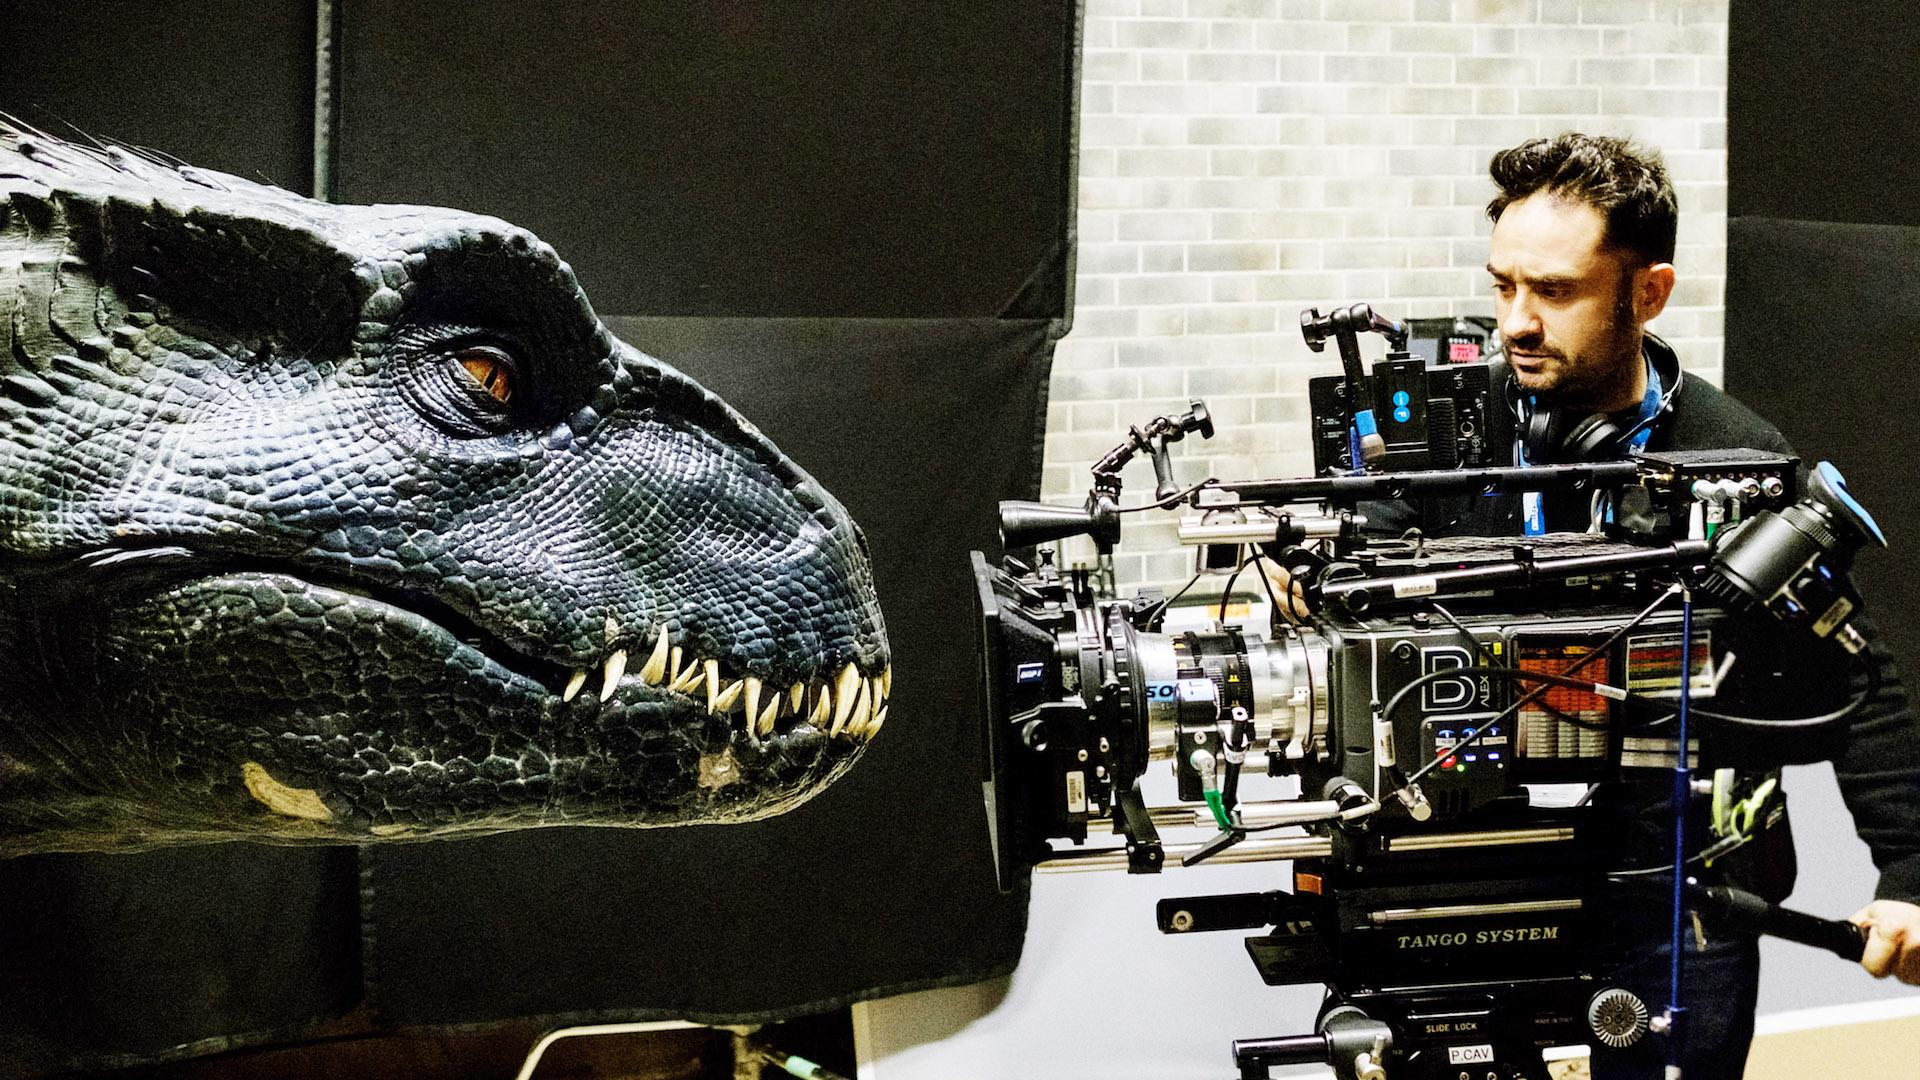 An *Interview* With Blue, A Chill Velociraptor From 'Jurassic World: Fallen Kingdom'